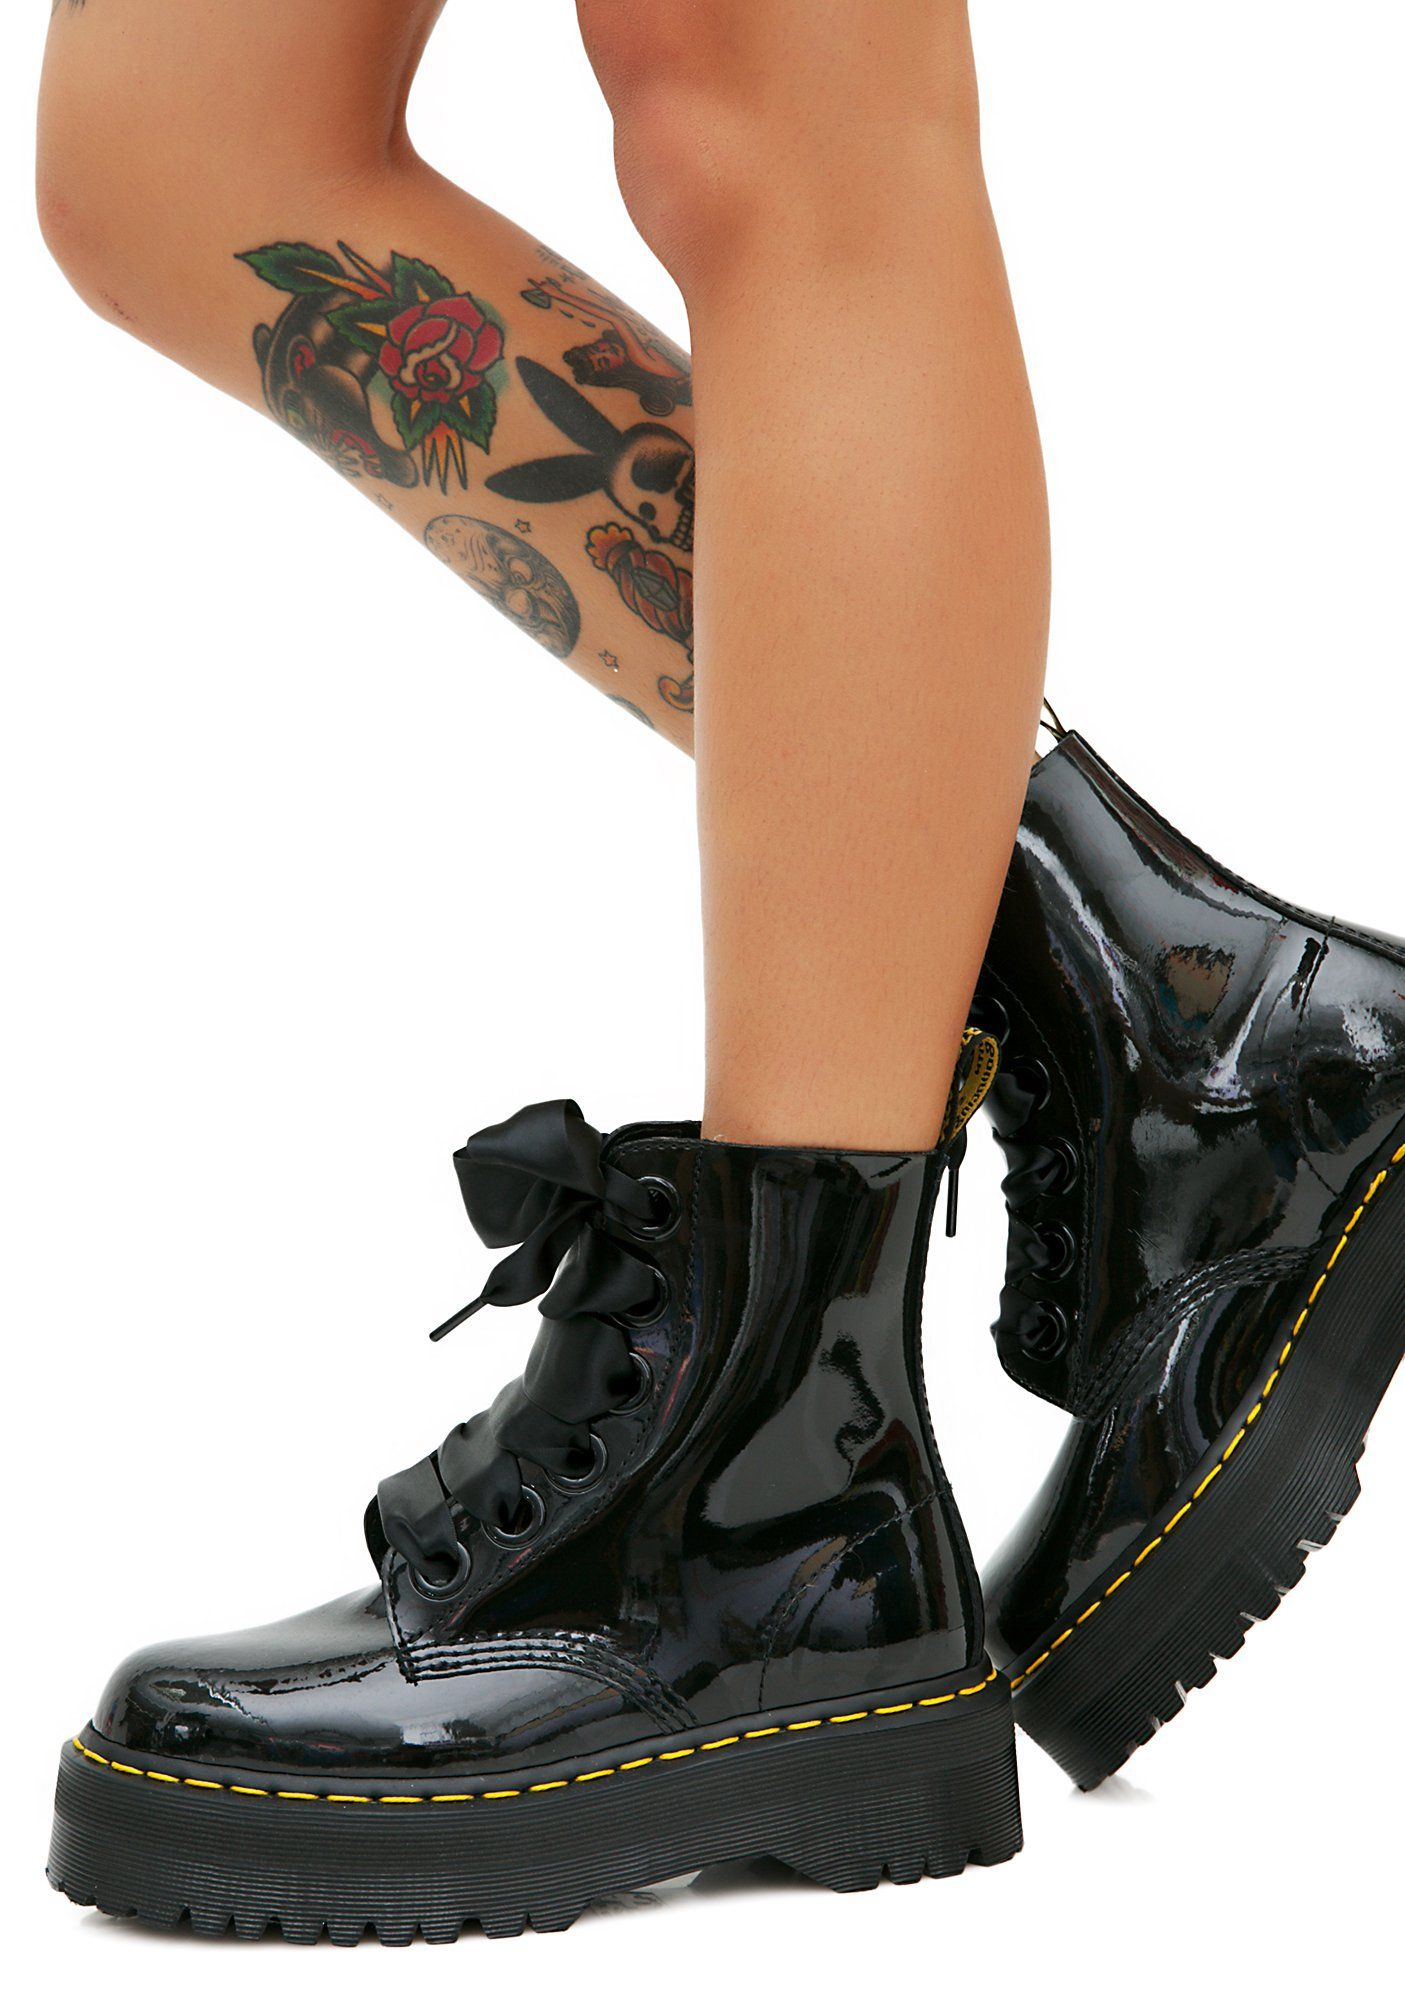 4396c932e46 Dr Martens Molly Black Patent 8 Eye Boots